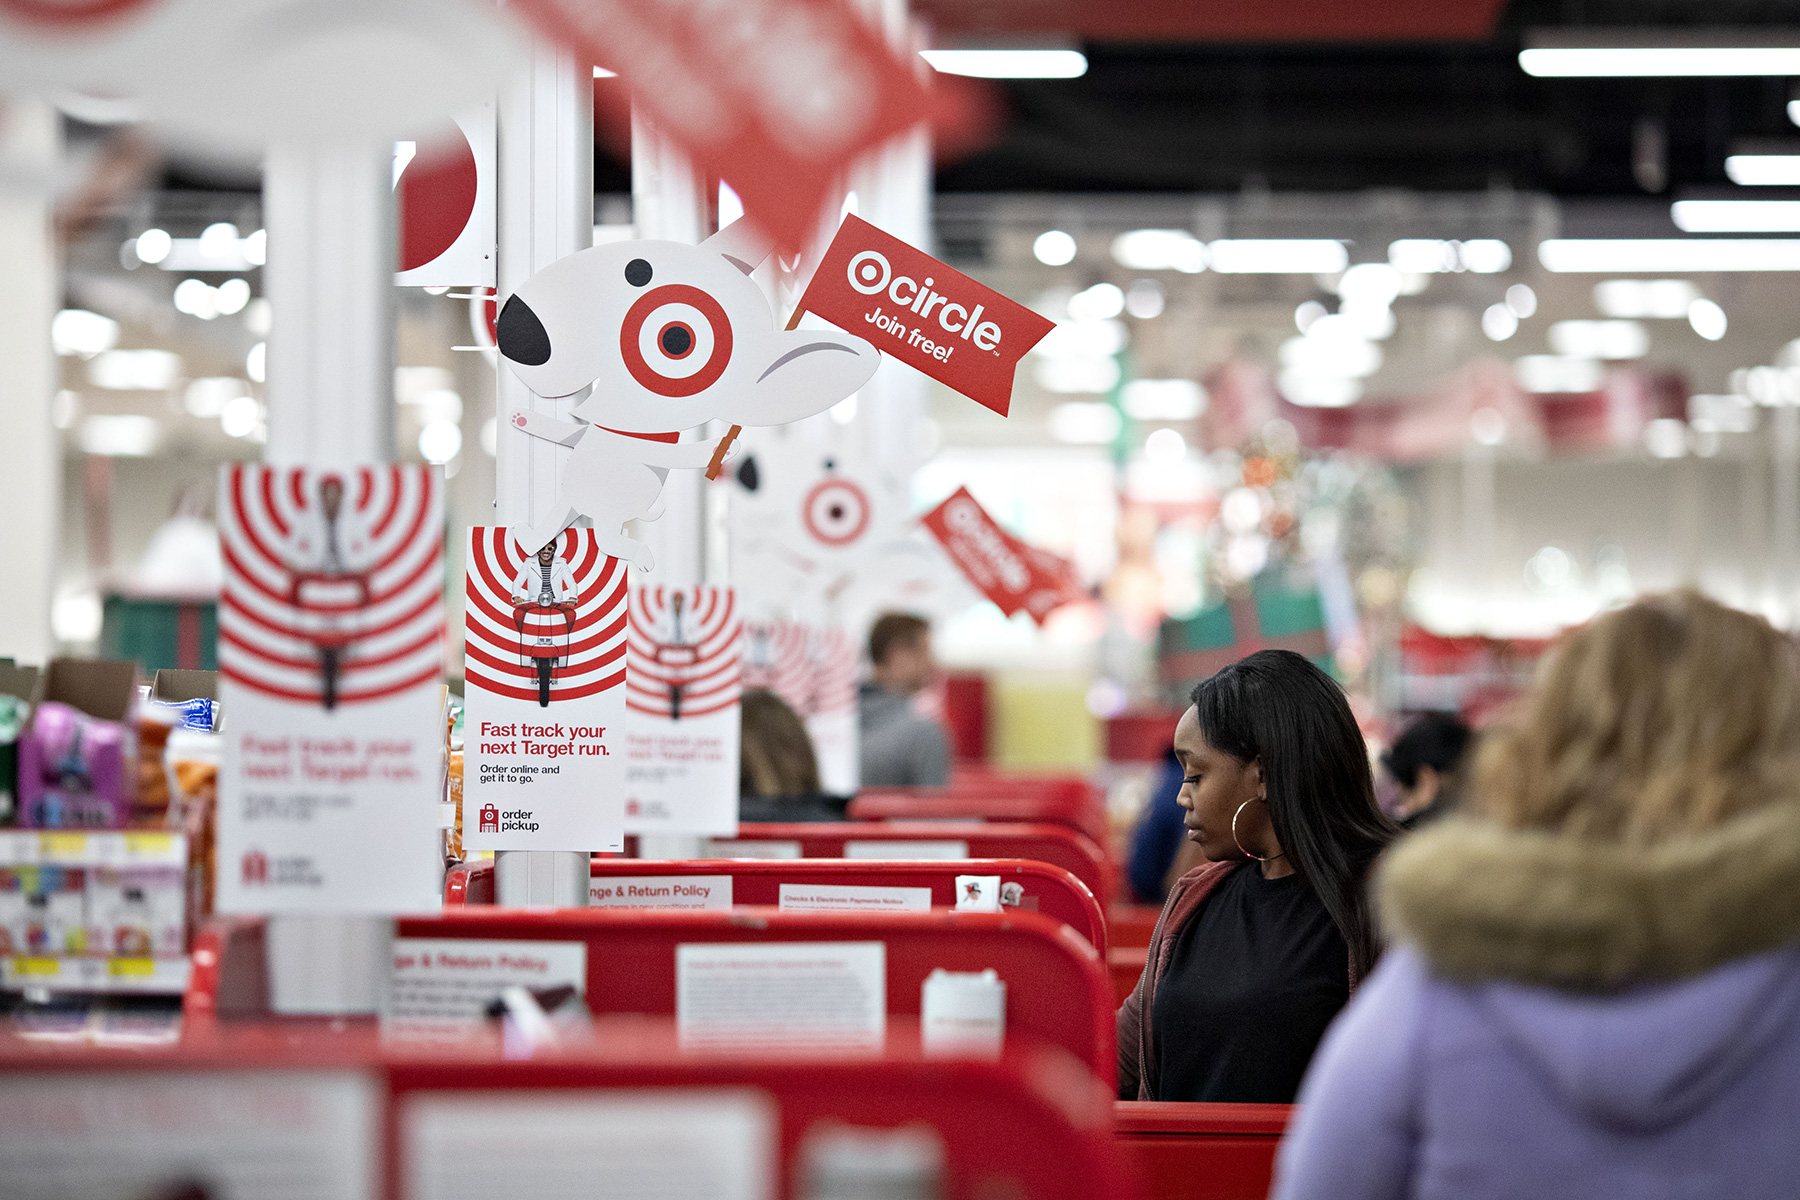 Target reported strong quarterly results as consumers spent on its products. (Getty Images)